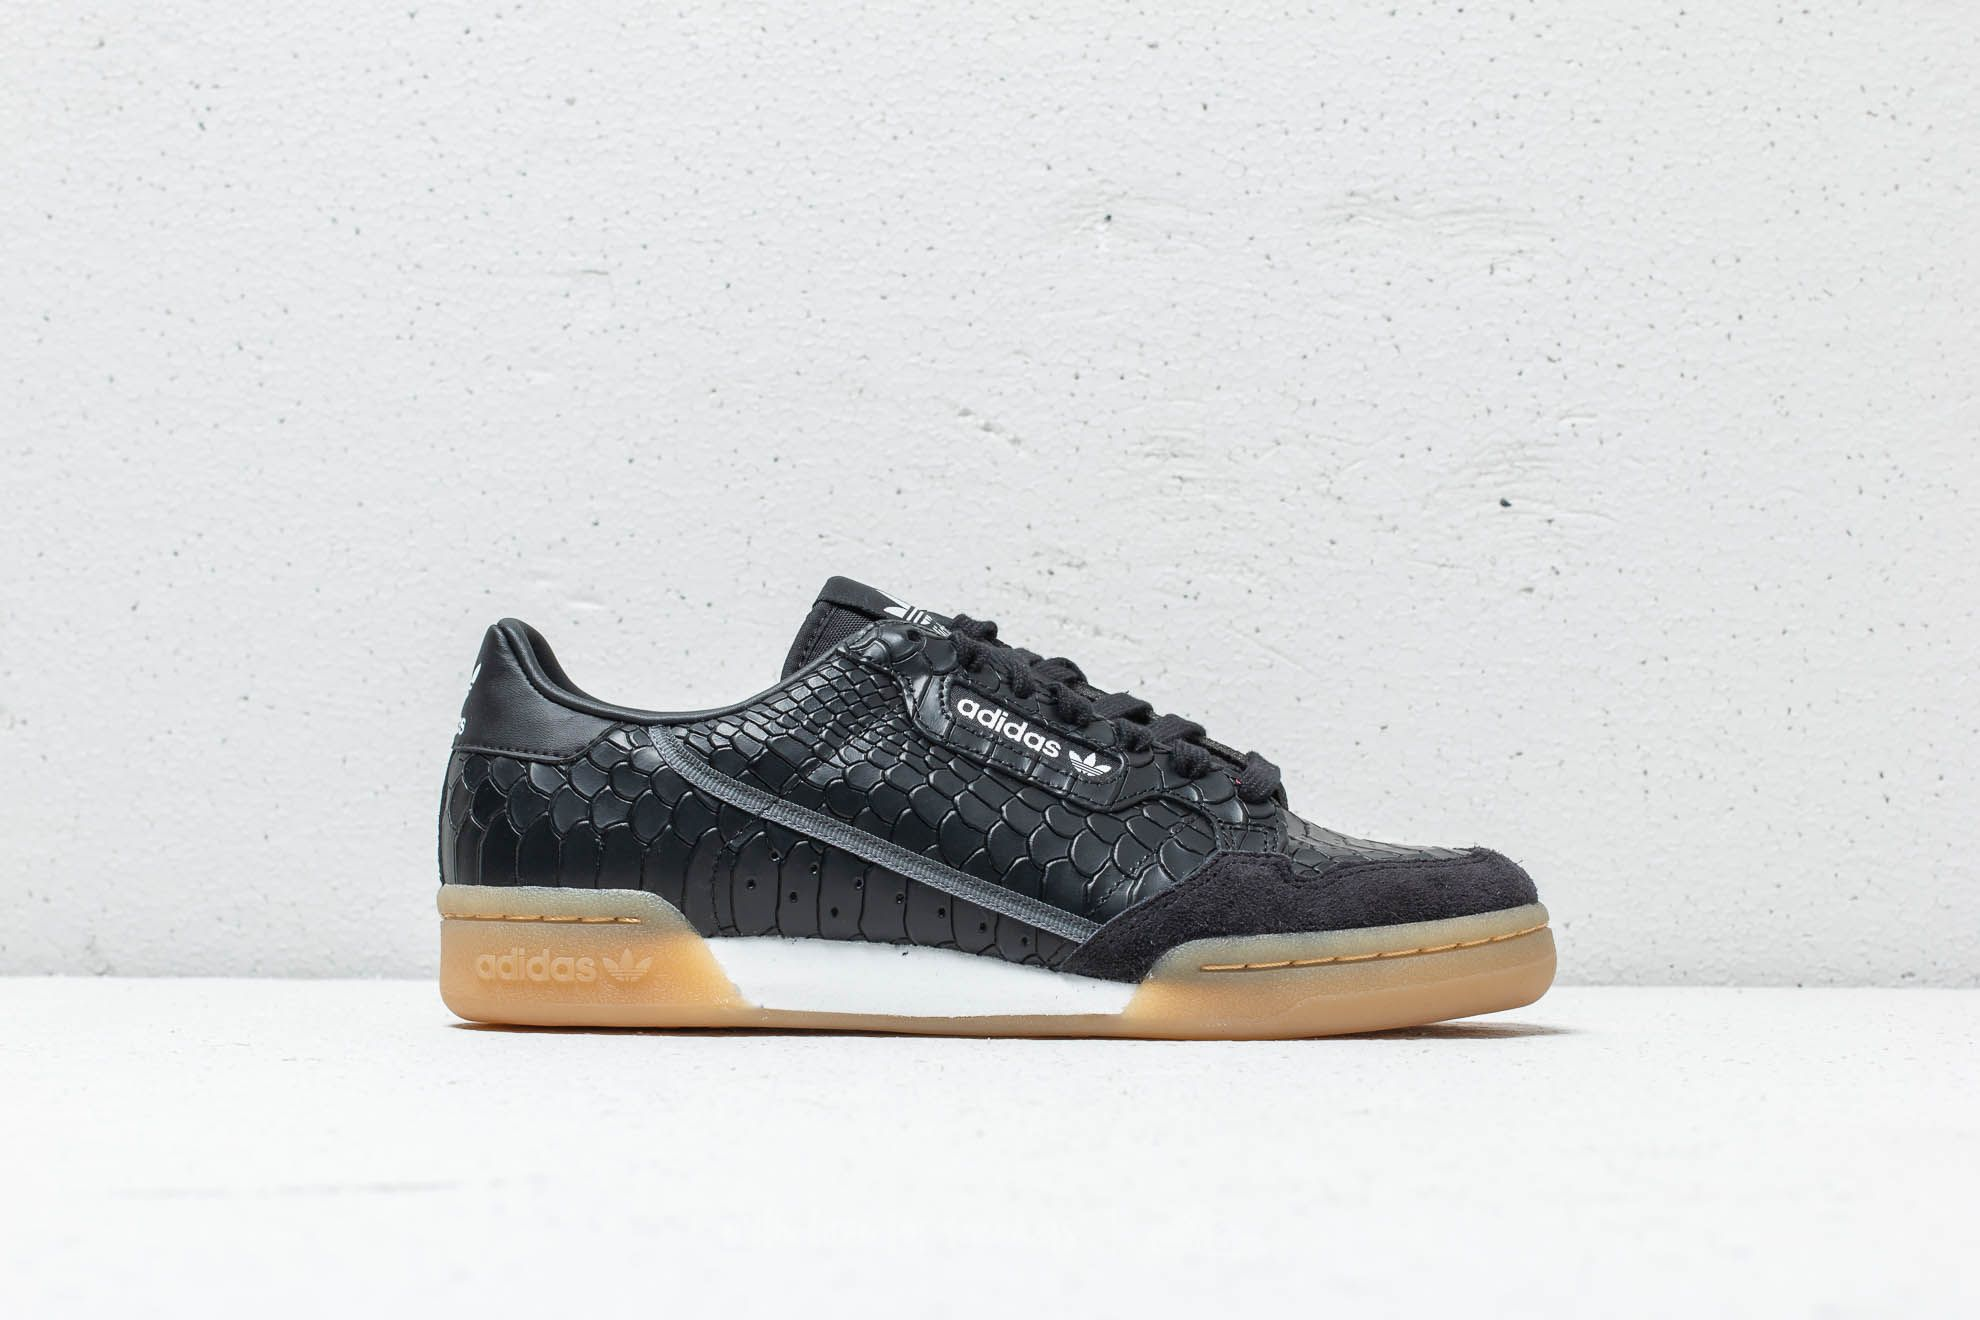 b6f2e019 adidas Continental 80 Core Black/ Carbon/ Grey Five at a great price $70 buy